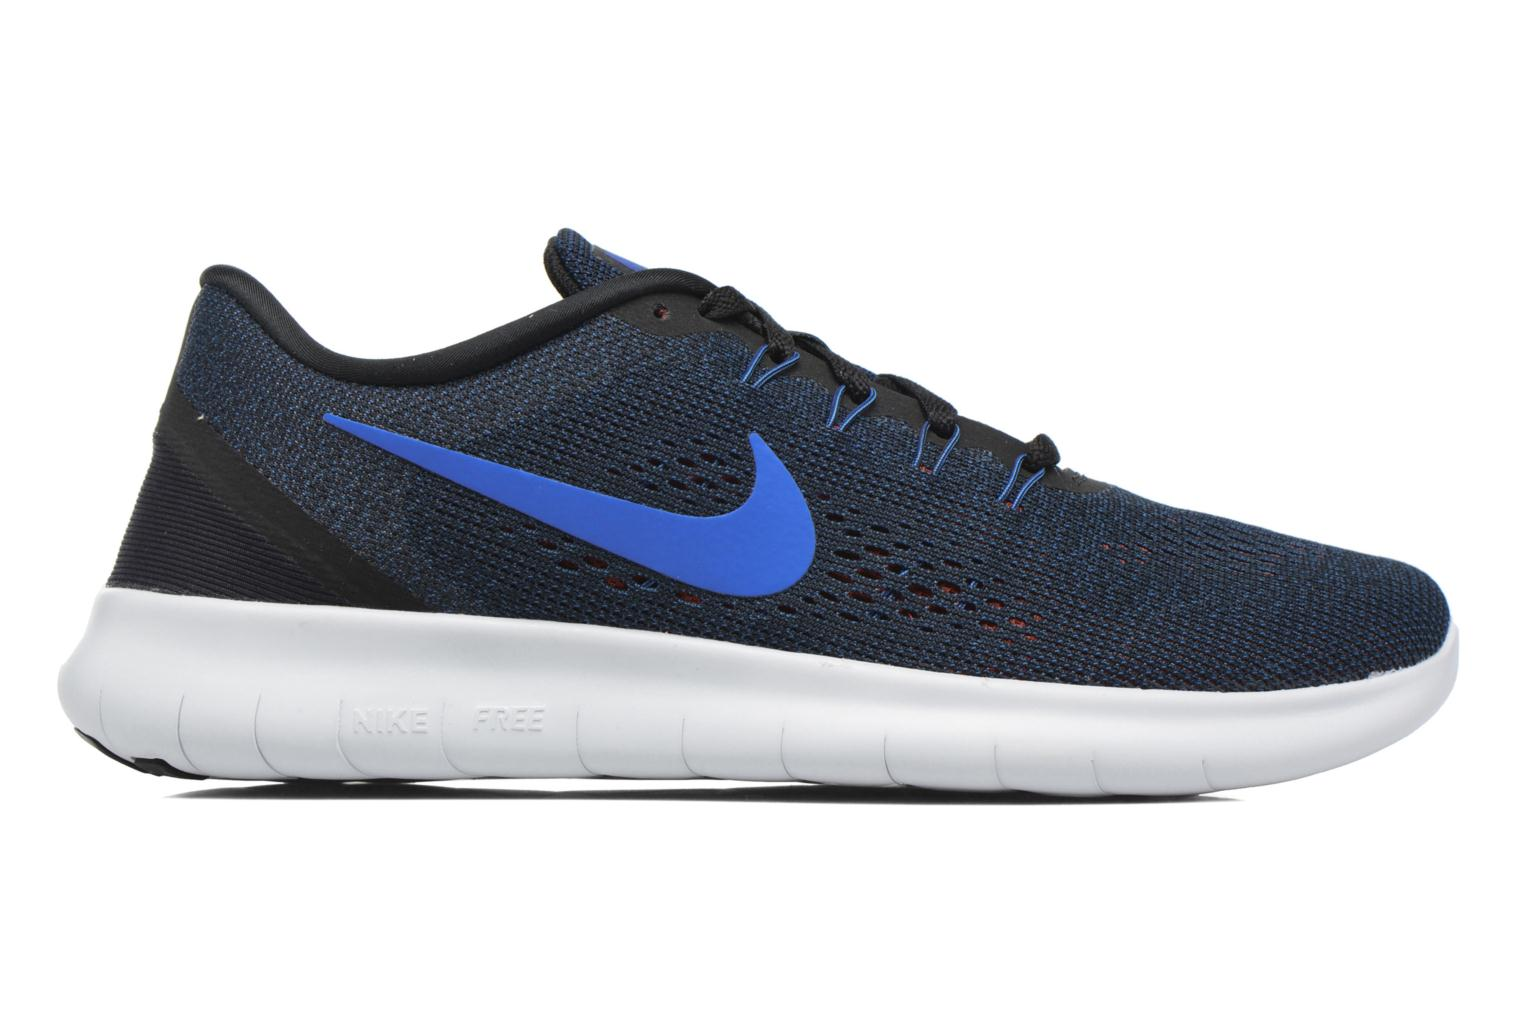 Nike Free Rn Black/Soar-Dark Cayenne-Team Royal